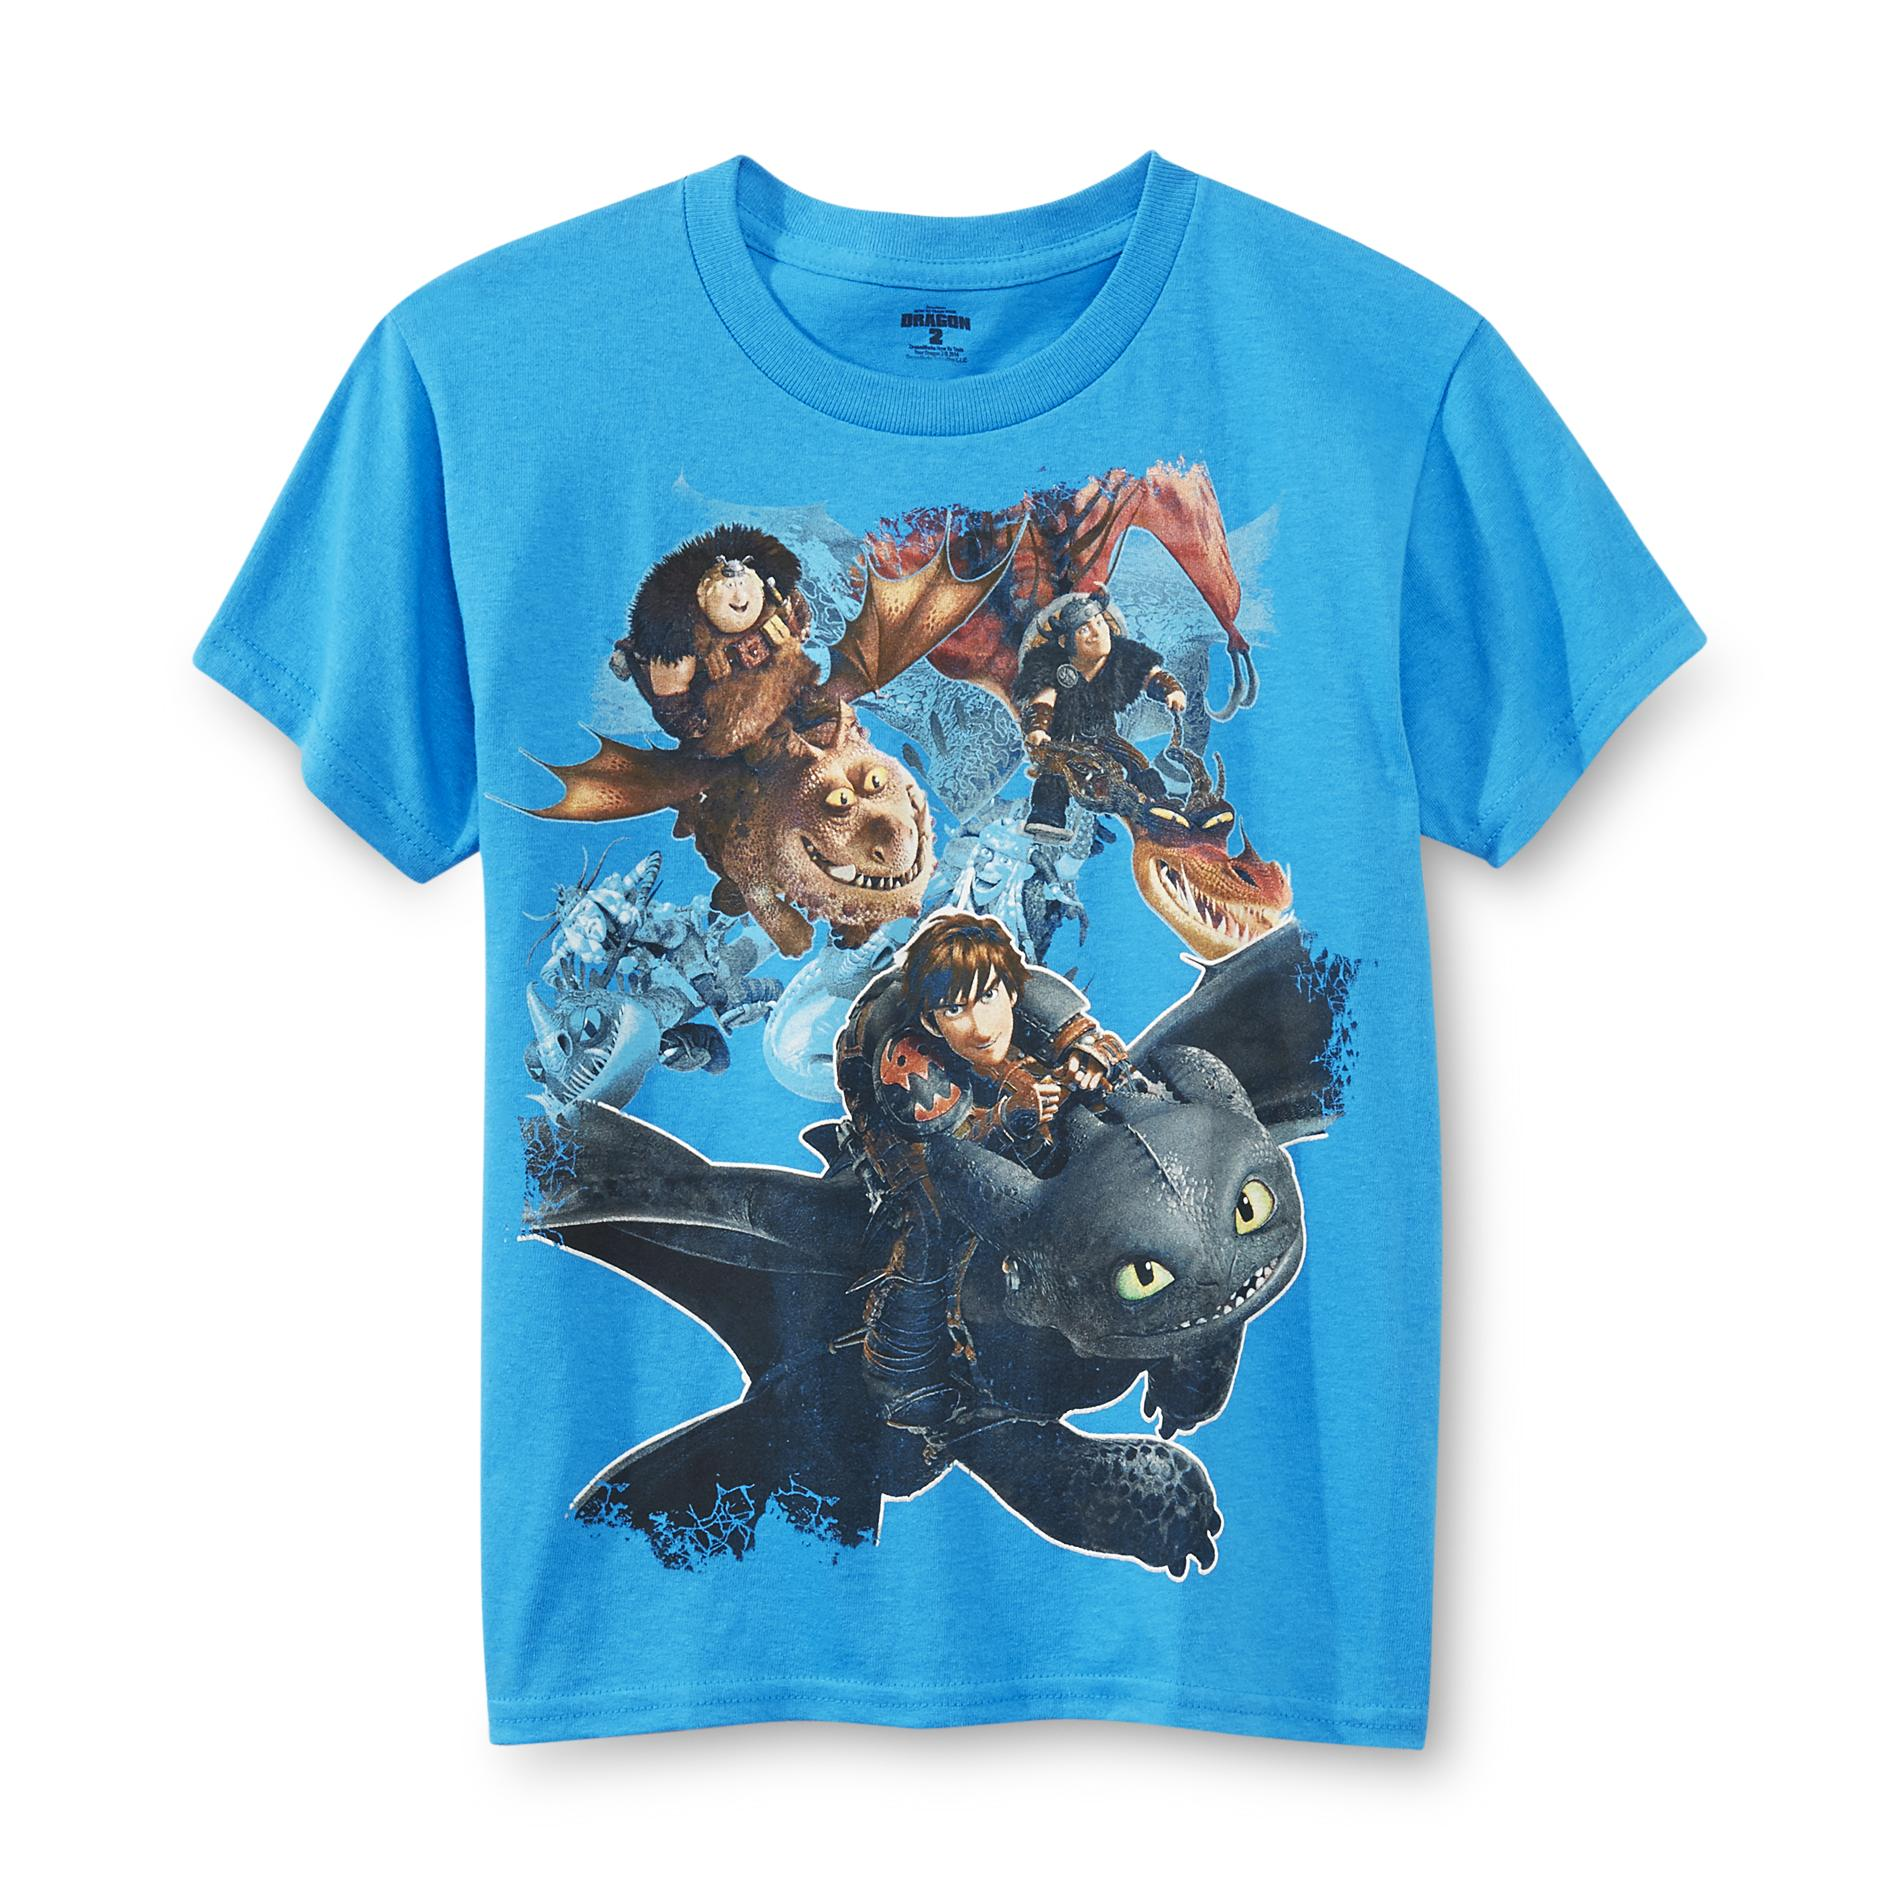 Dreamworks Boys Graphic T Shirt How To Train Your Dragon 2